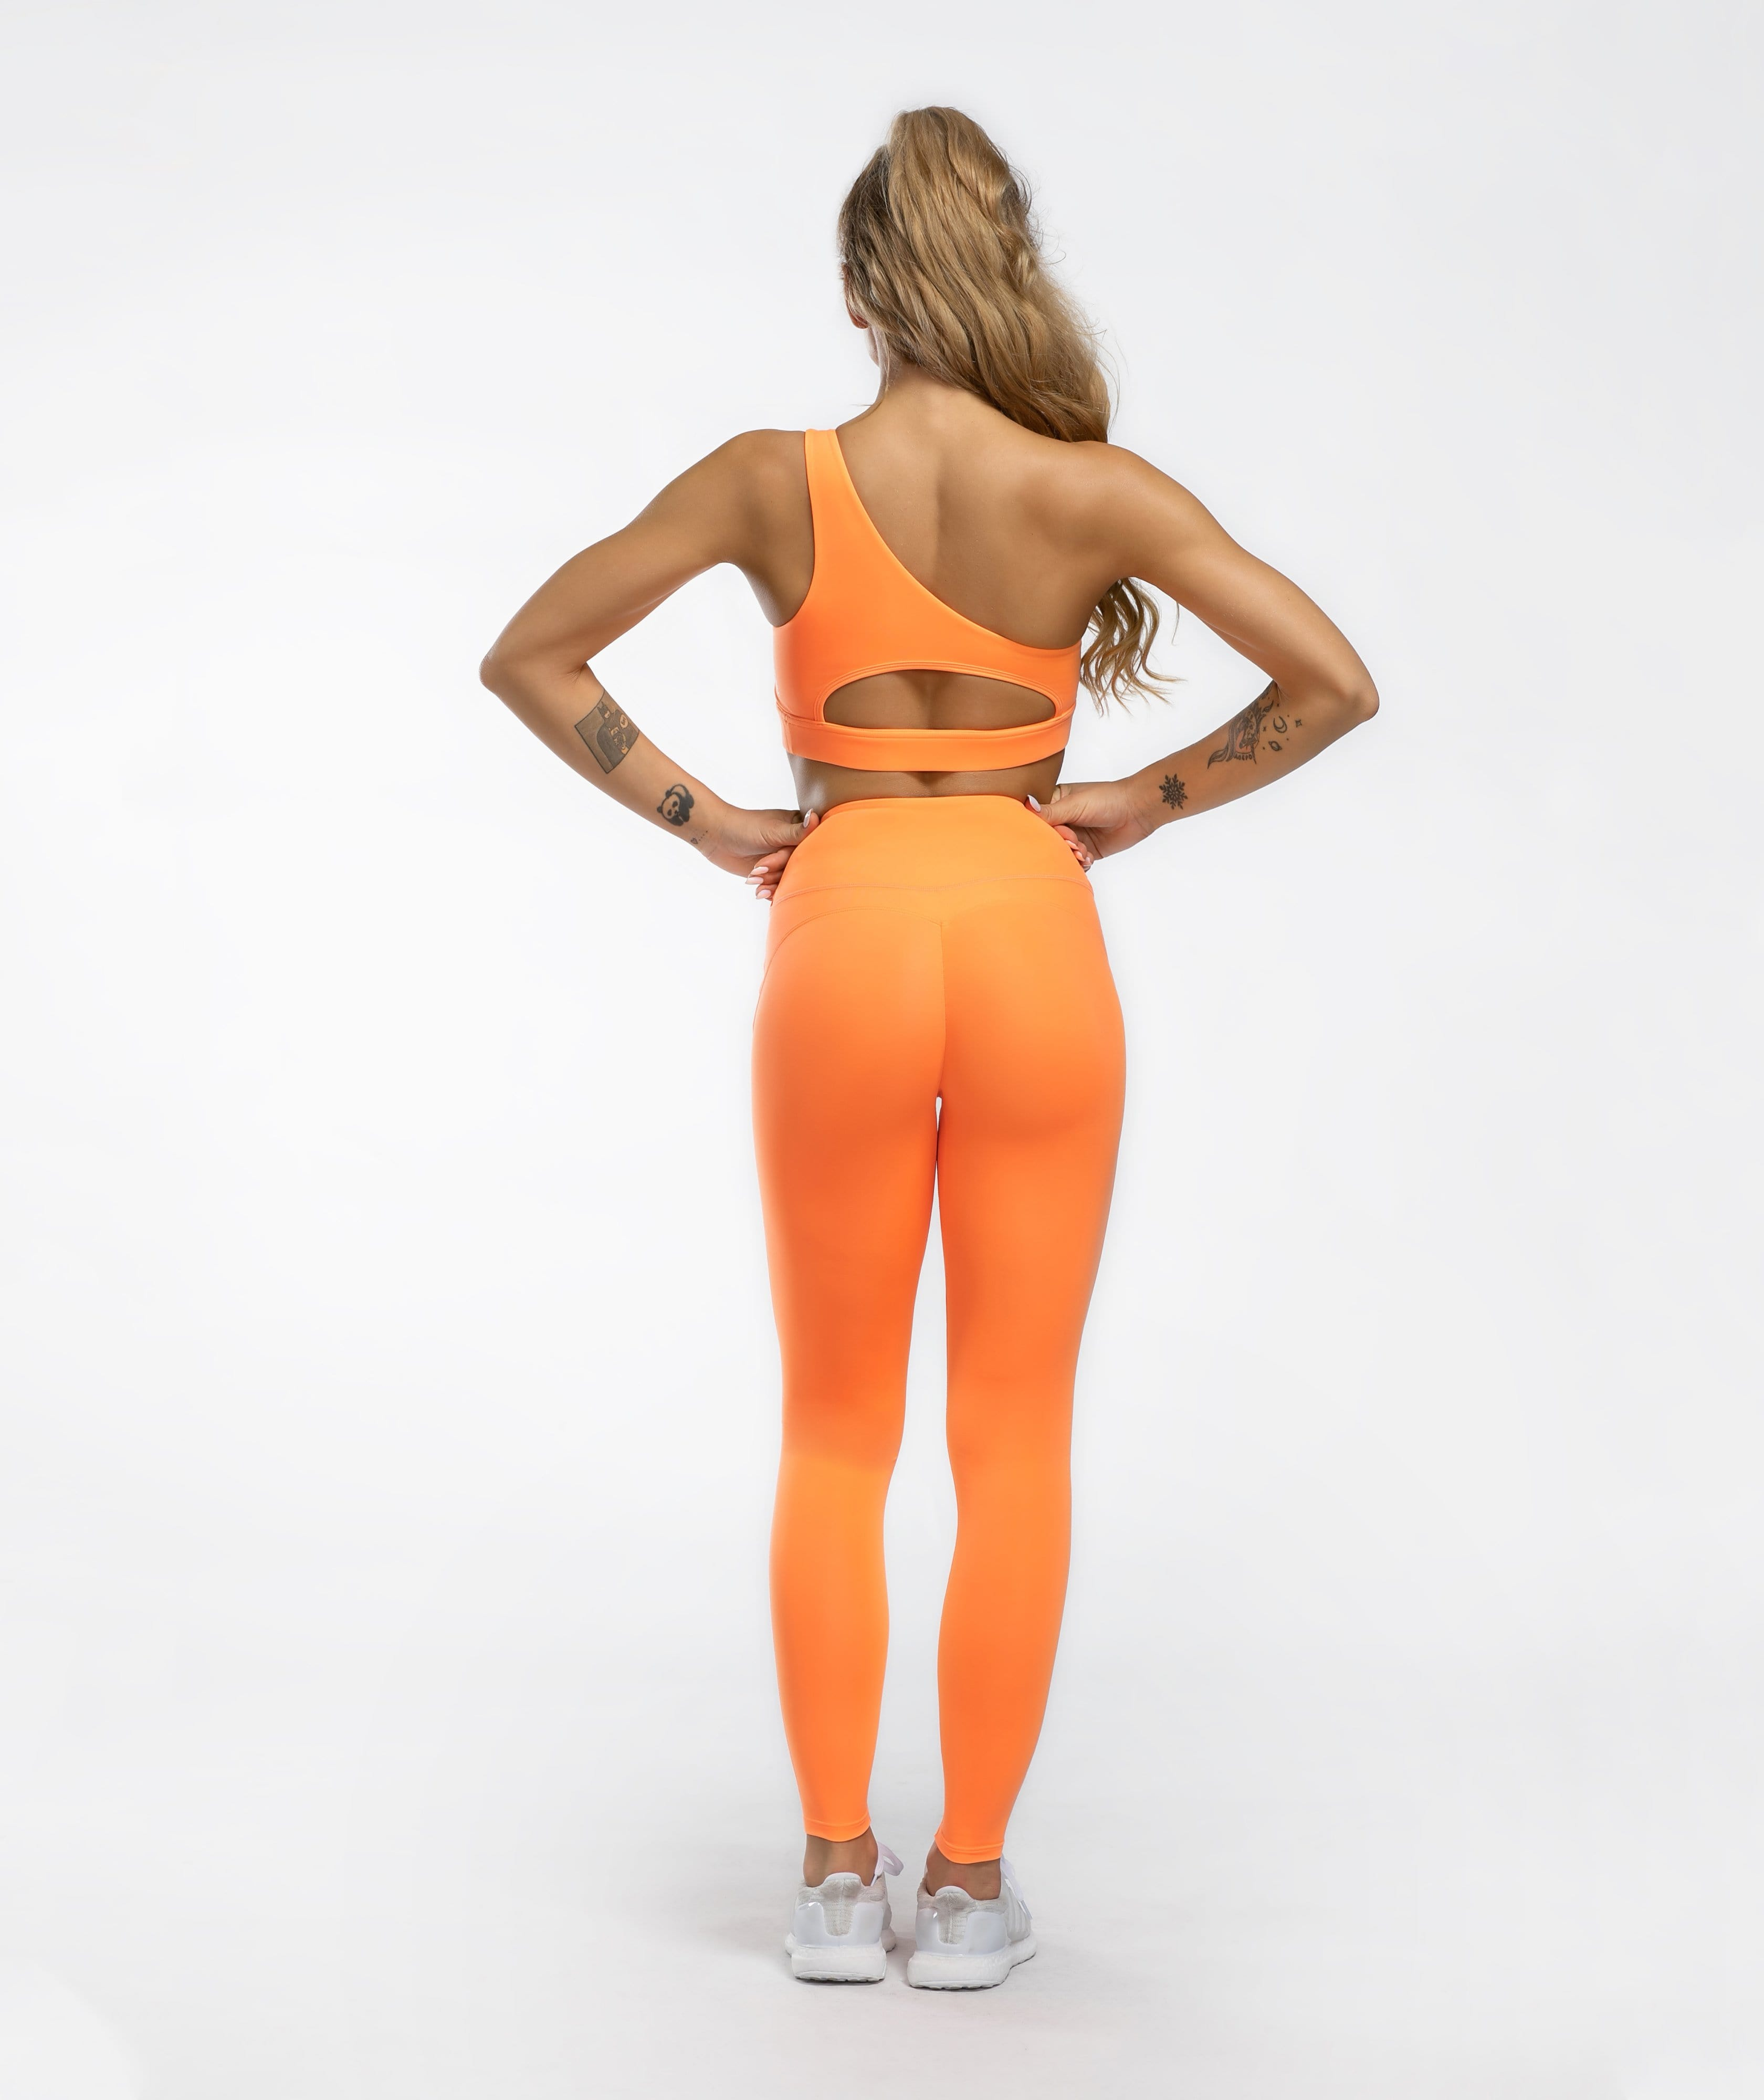 Honeypeach Sculpt Leggings - Orange - Firm Abs Fitness